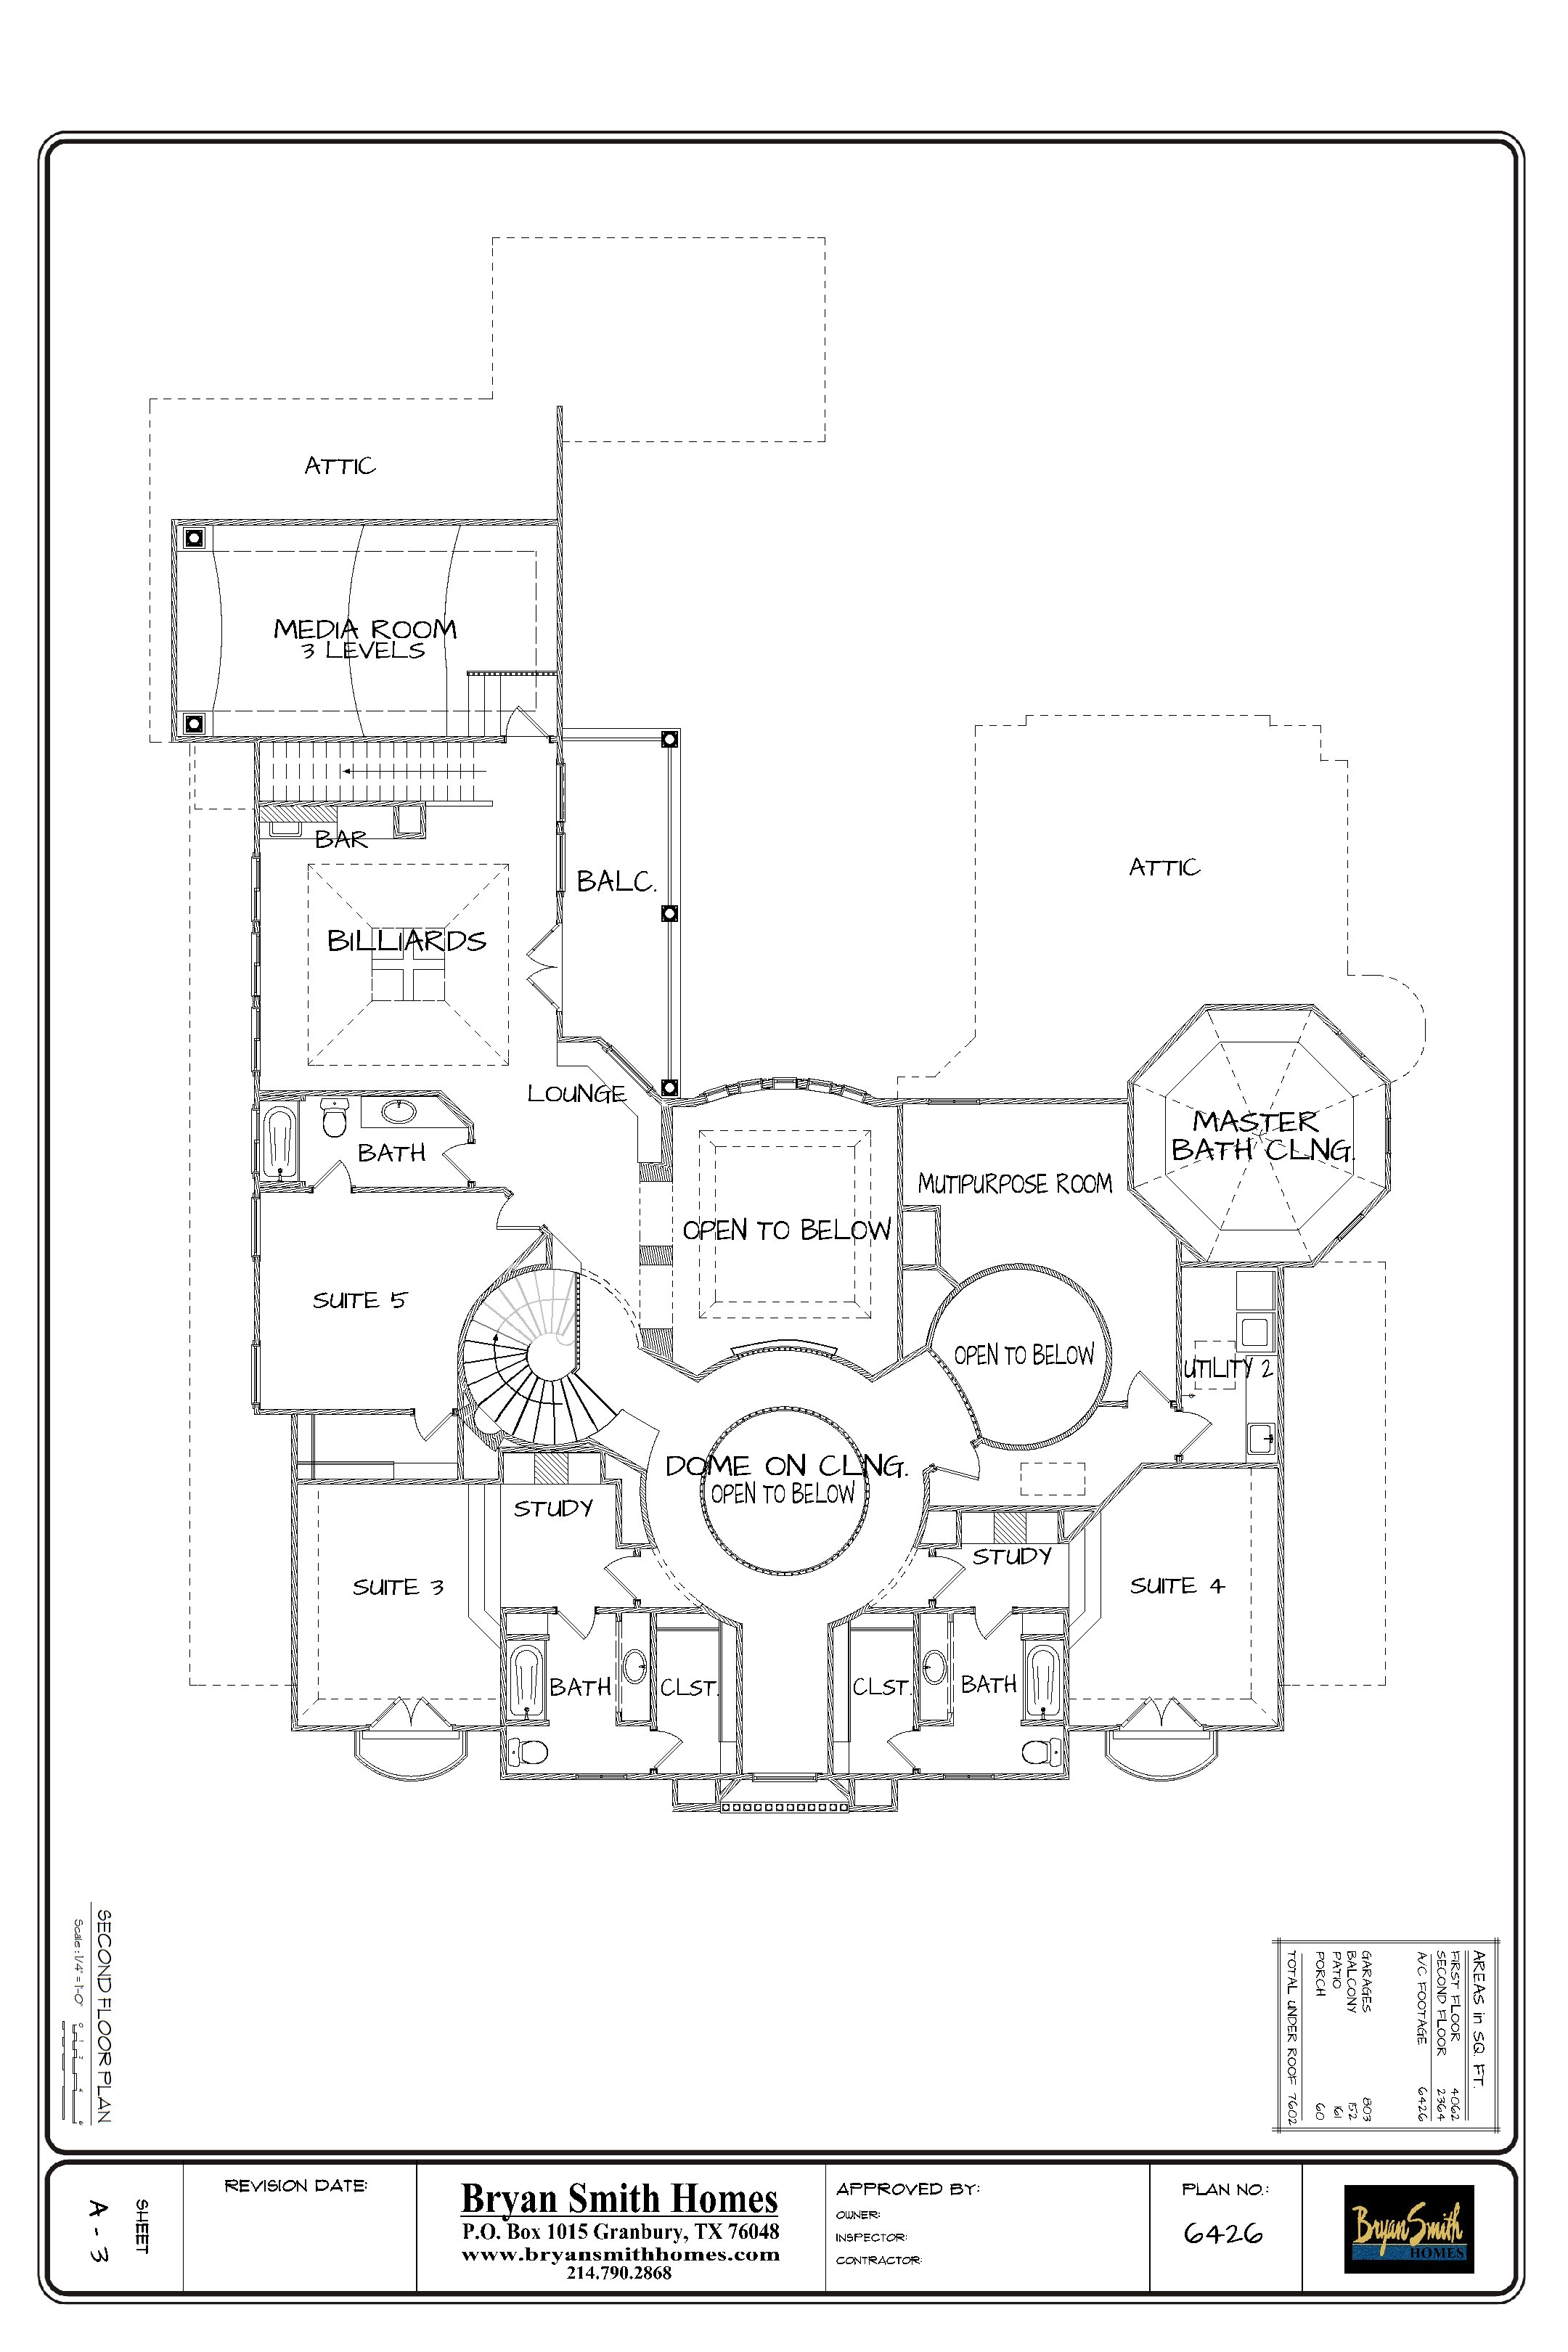 Home Builders In Fort Worth French Renaissance | Plan 6426